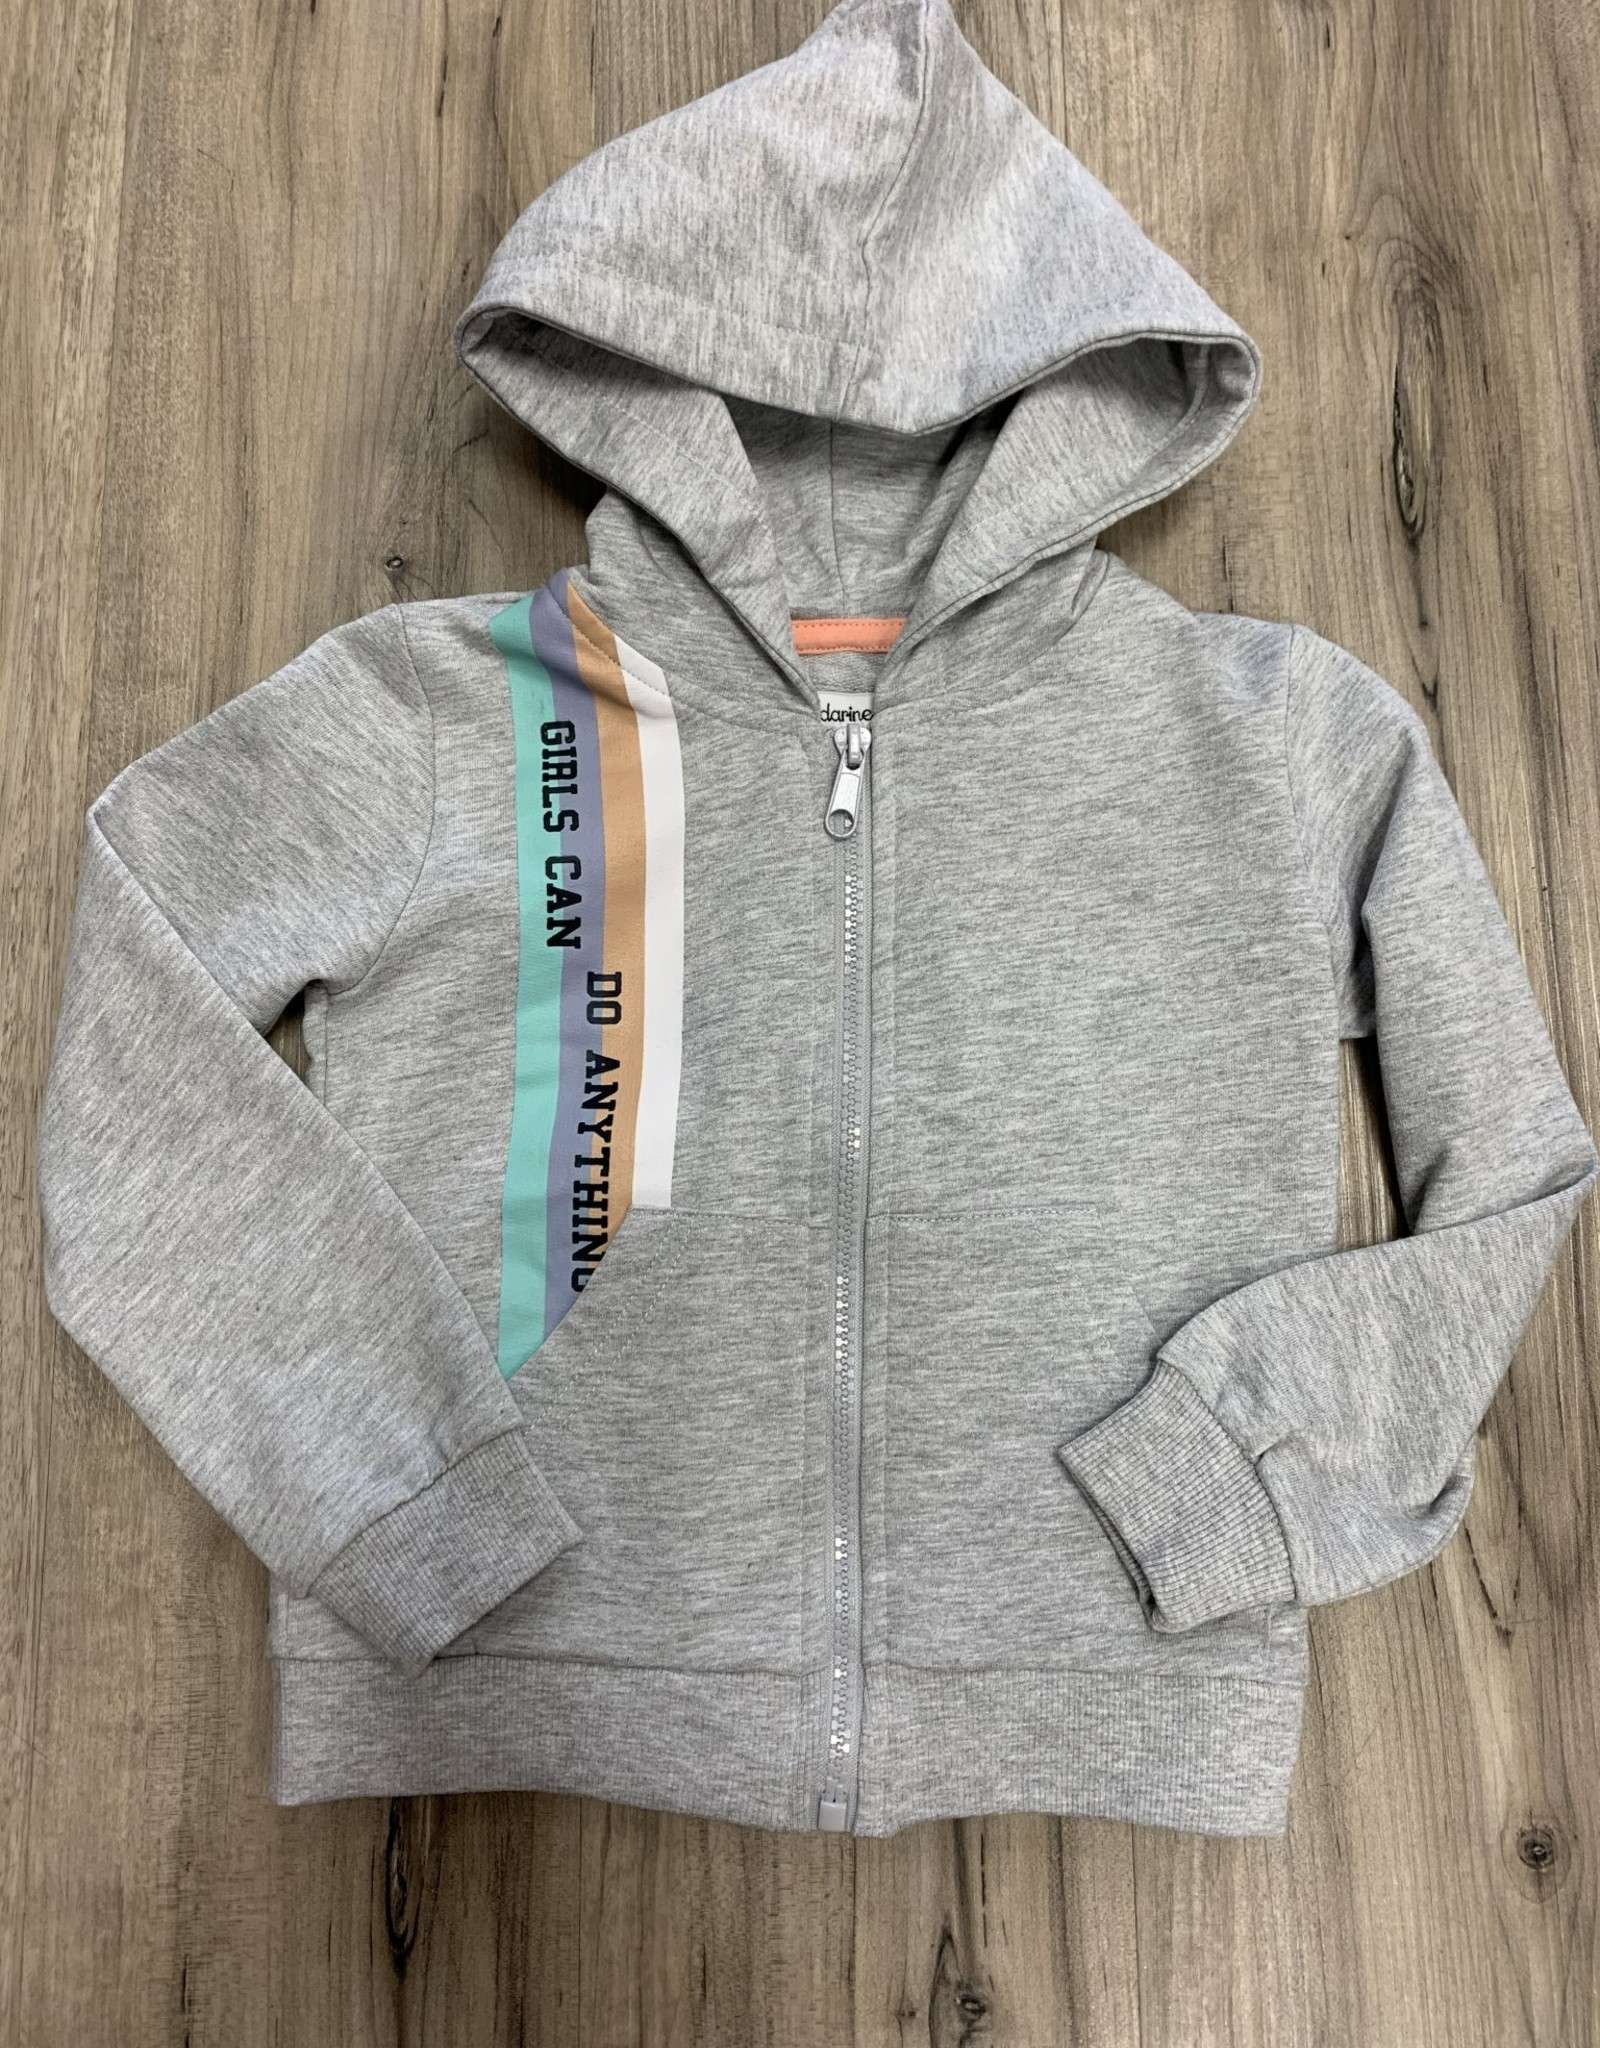 Mandarine & Co Jogging sweater